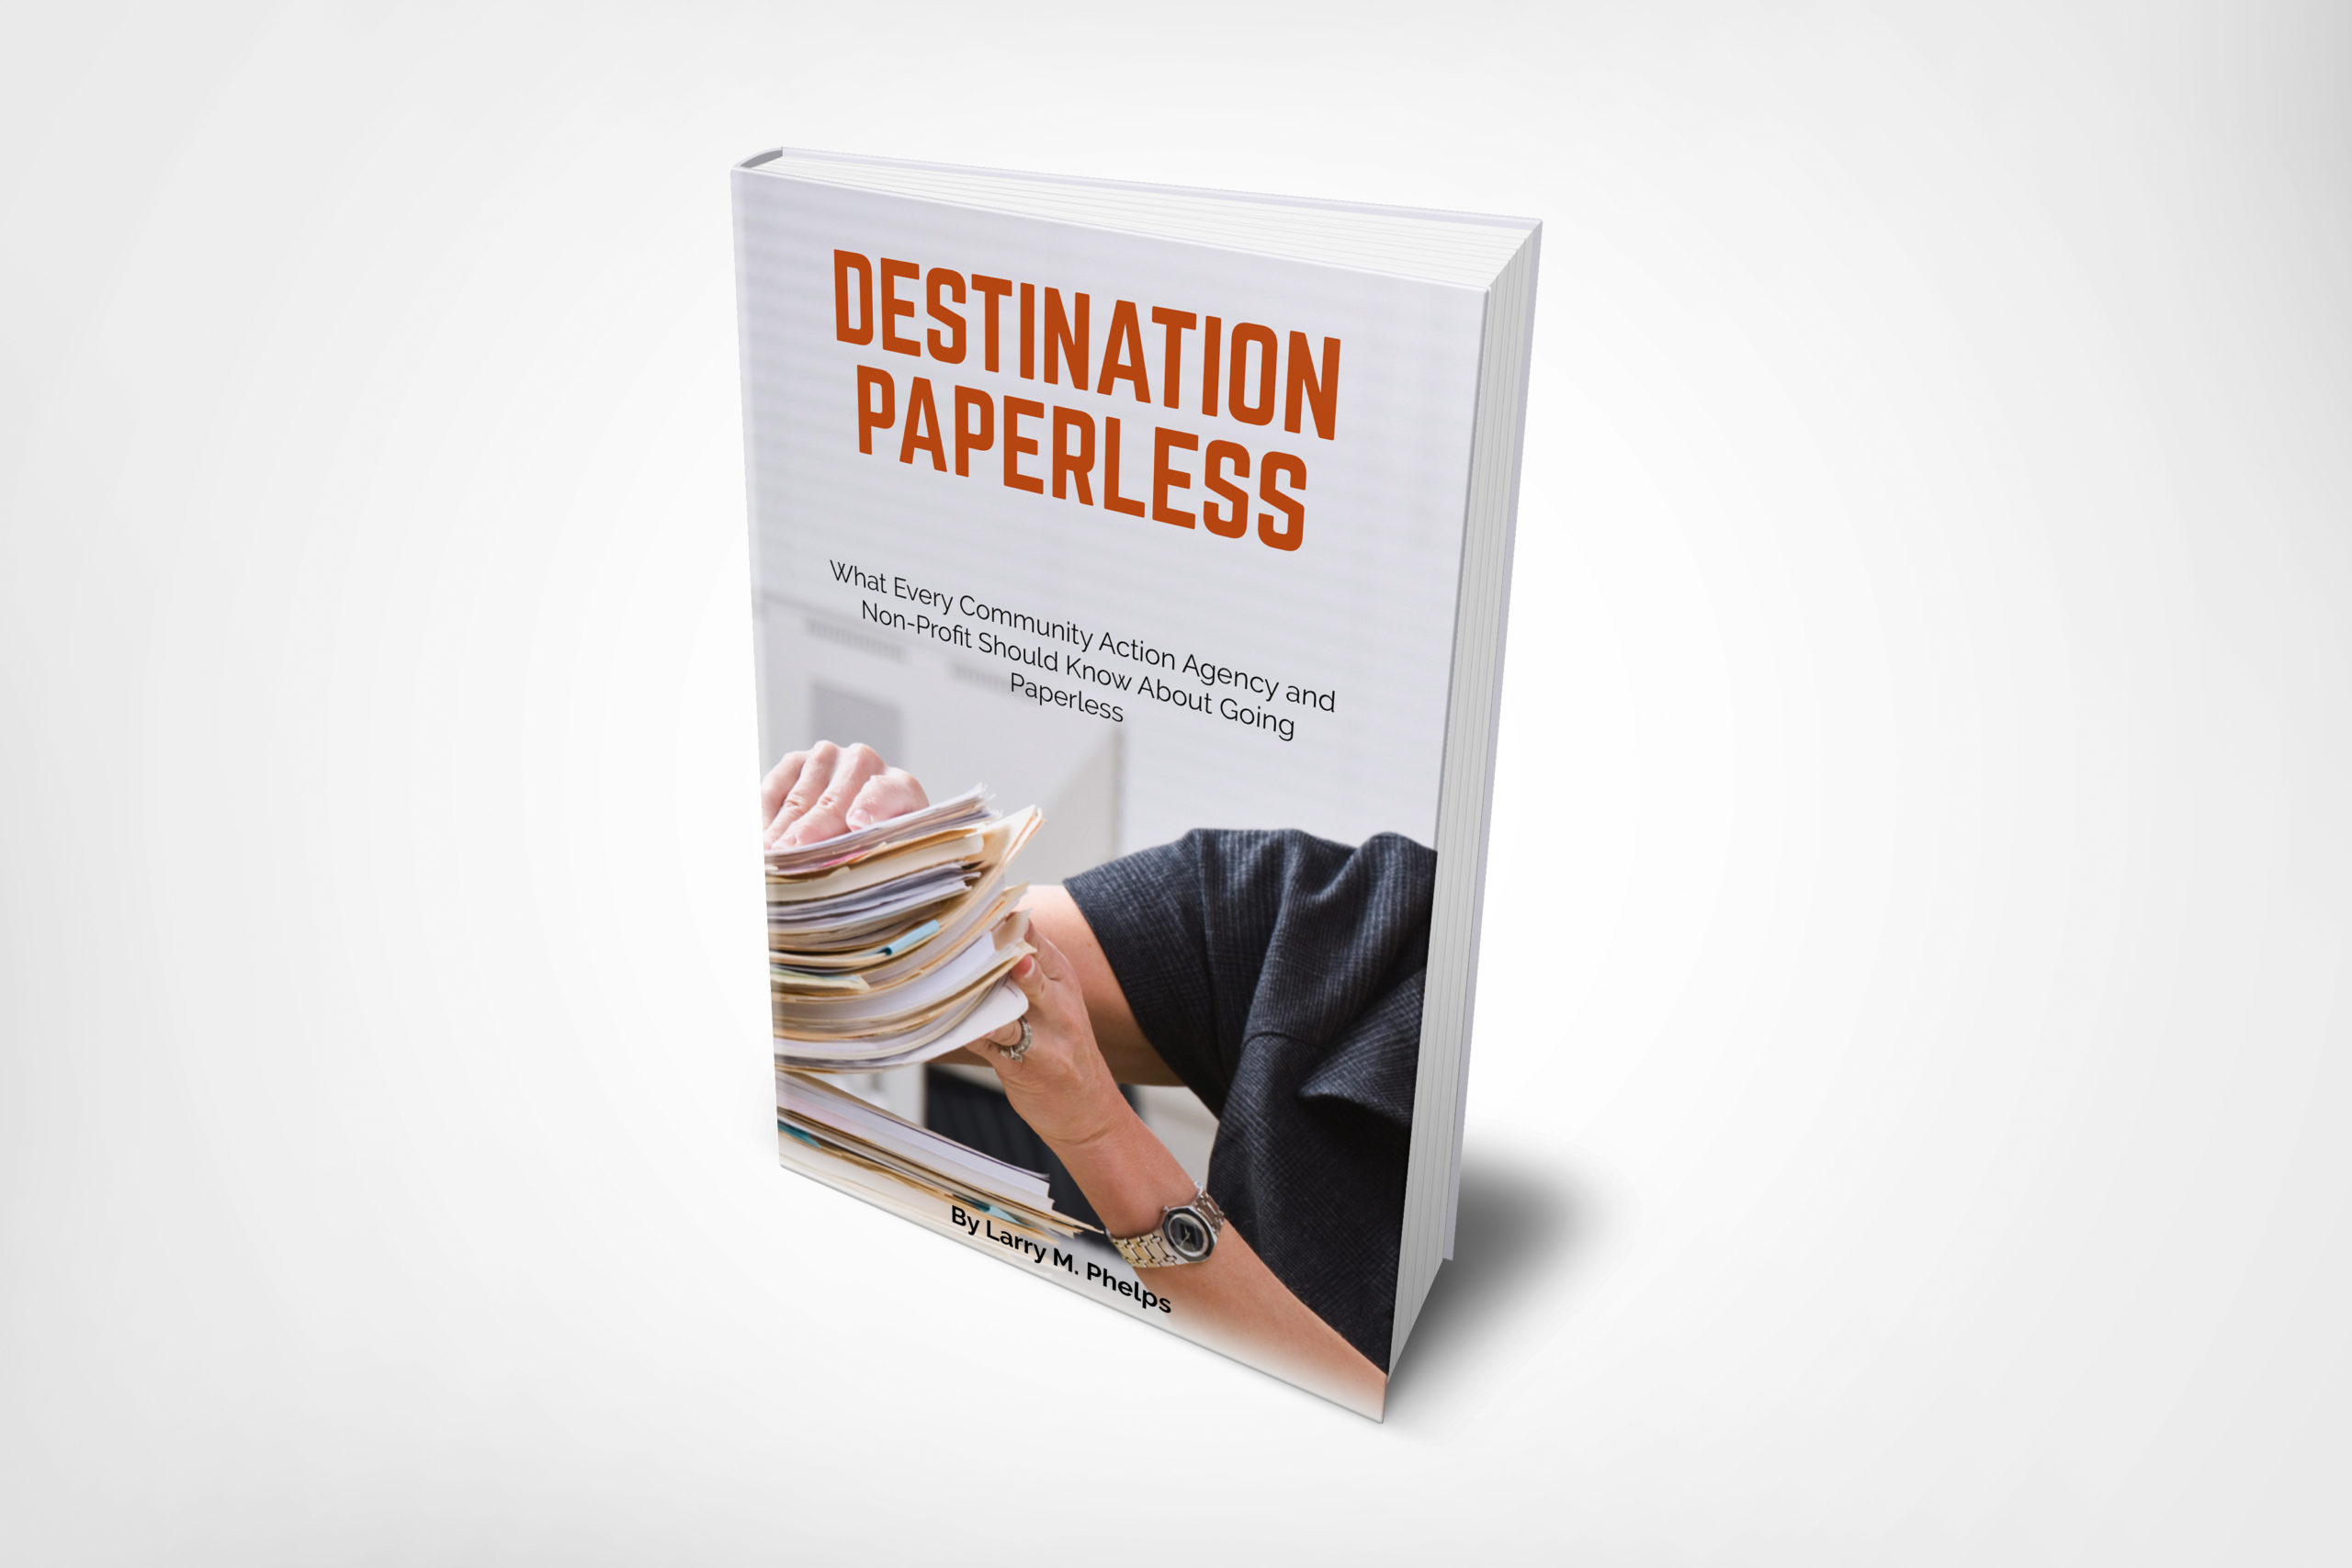 Destination paperless book